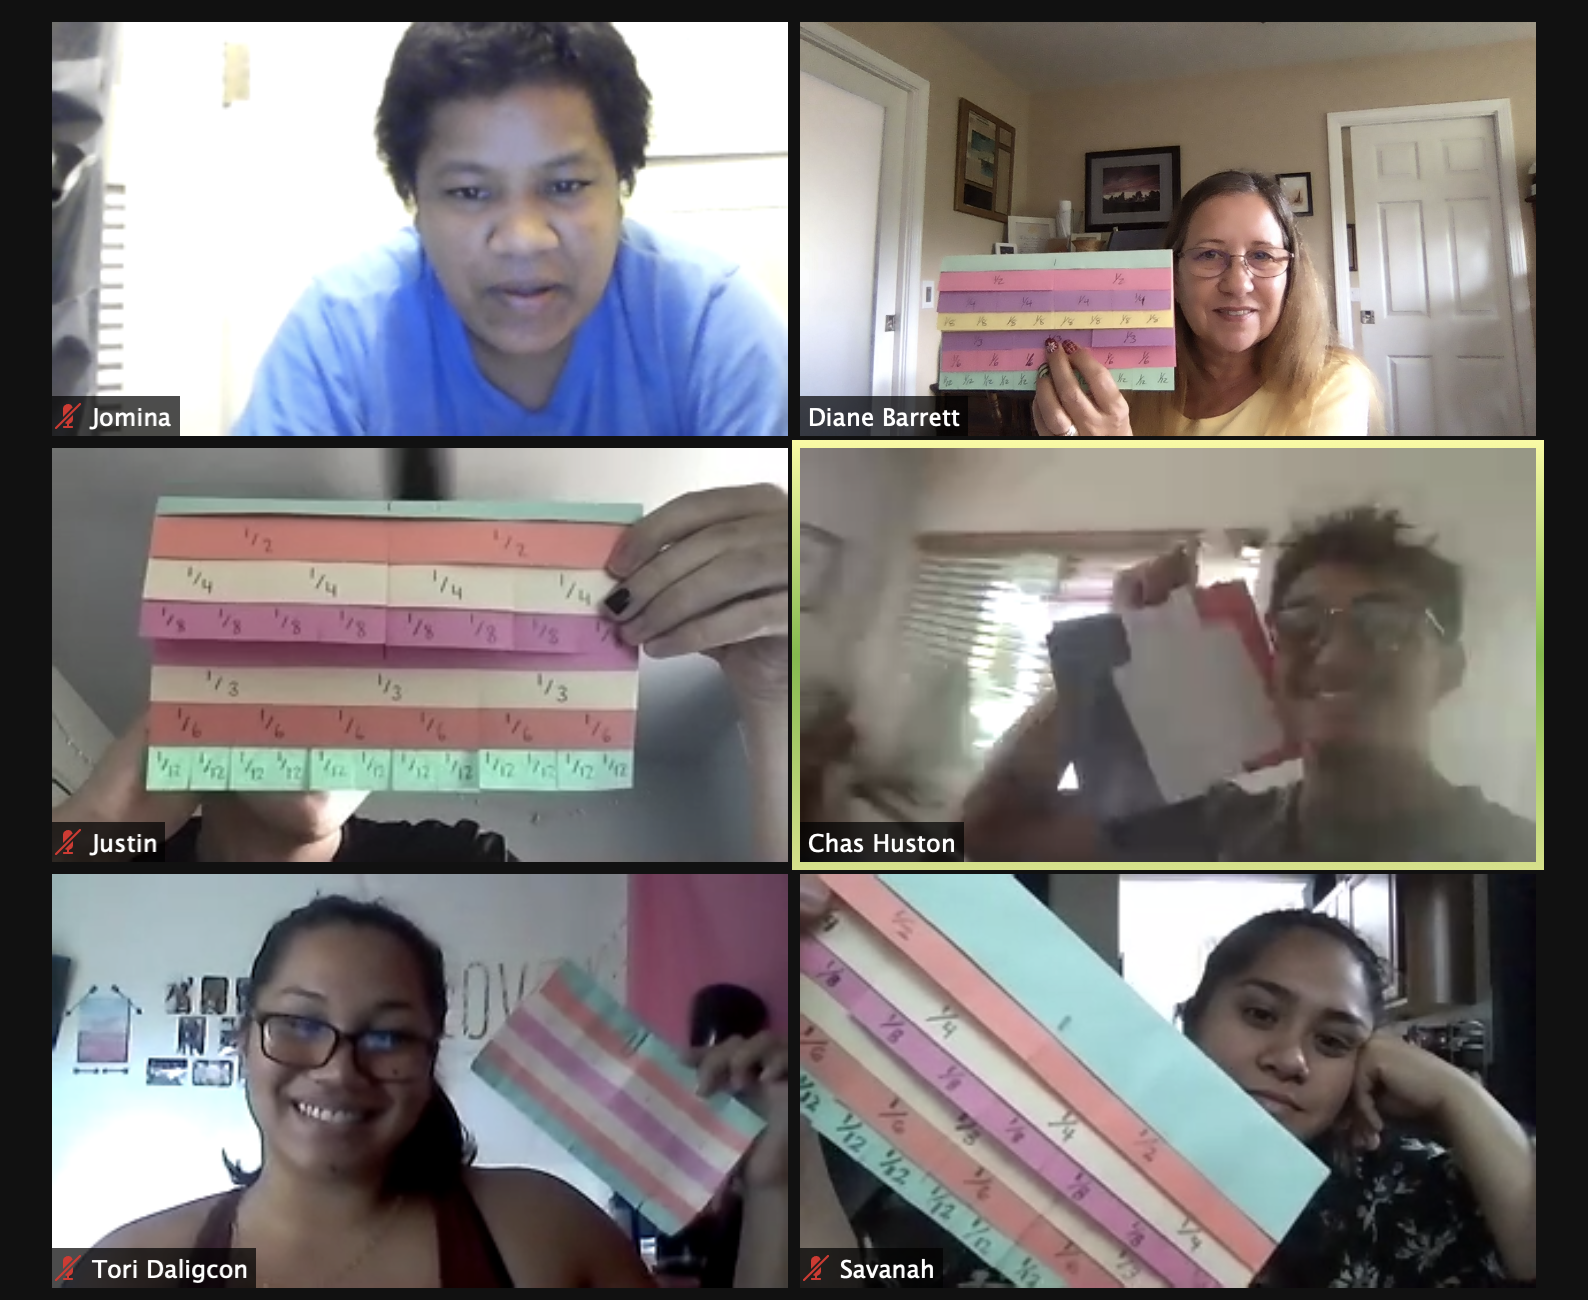 Screenshot of math class on Zoom with grid of student faces using manipulatives.